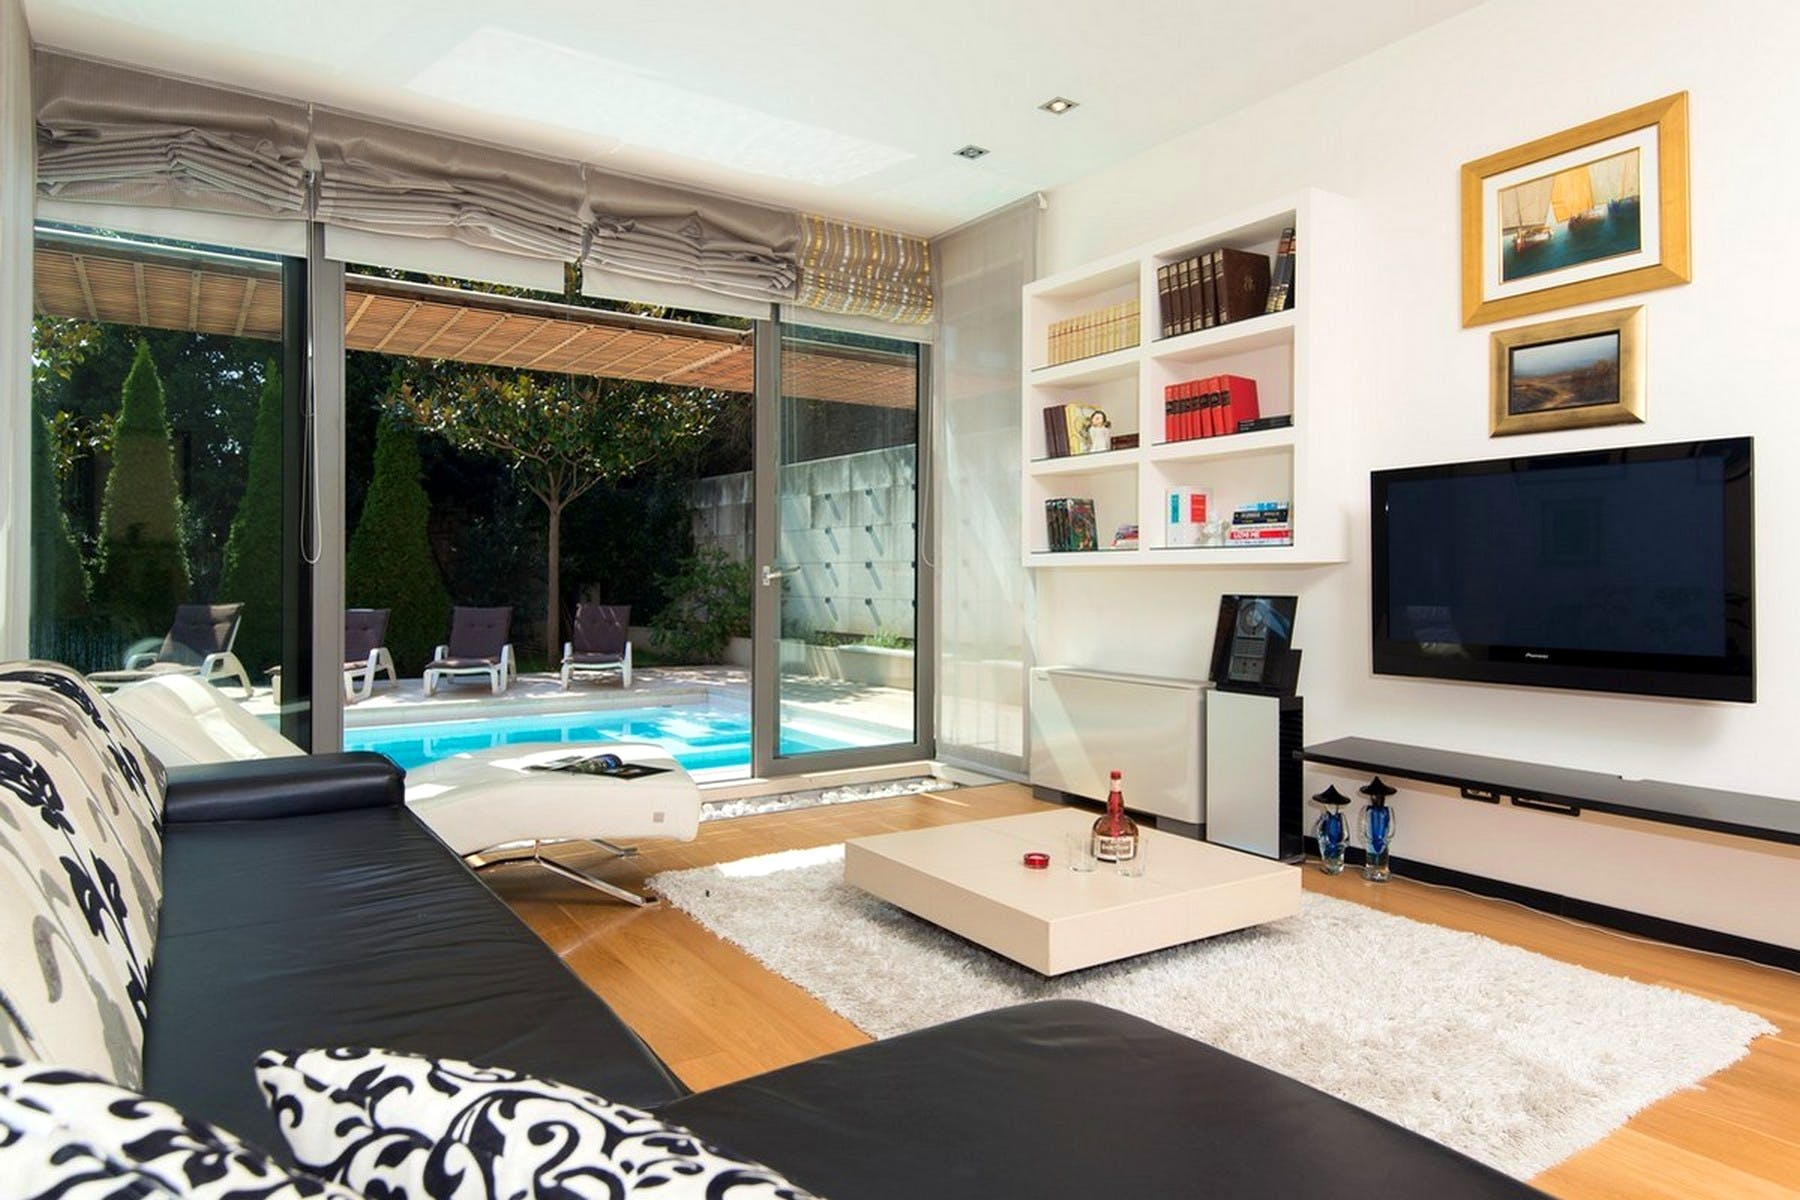 View of the pool area from the living room